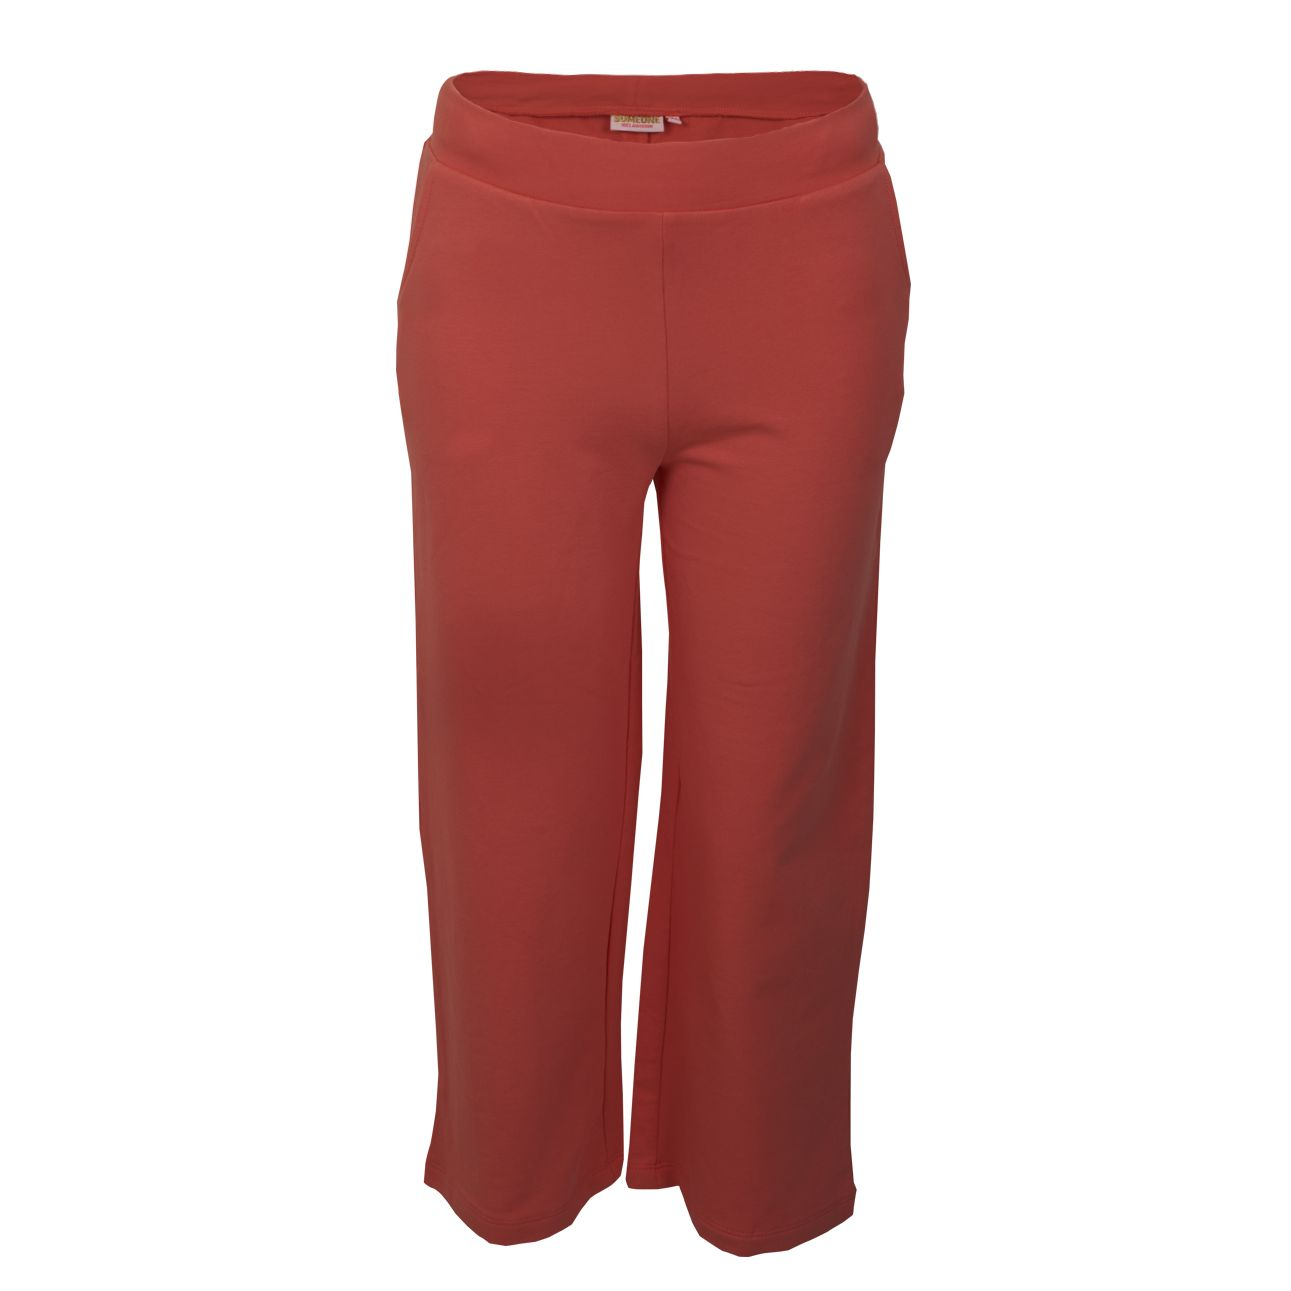 Culotte 128 Coral SOMEONE 100% Awesome